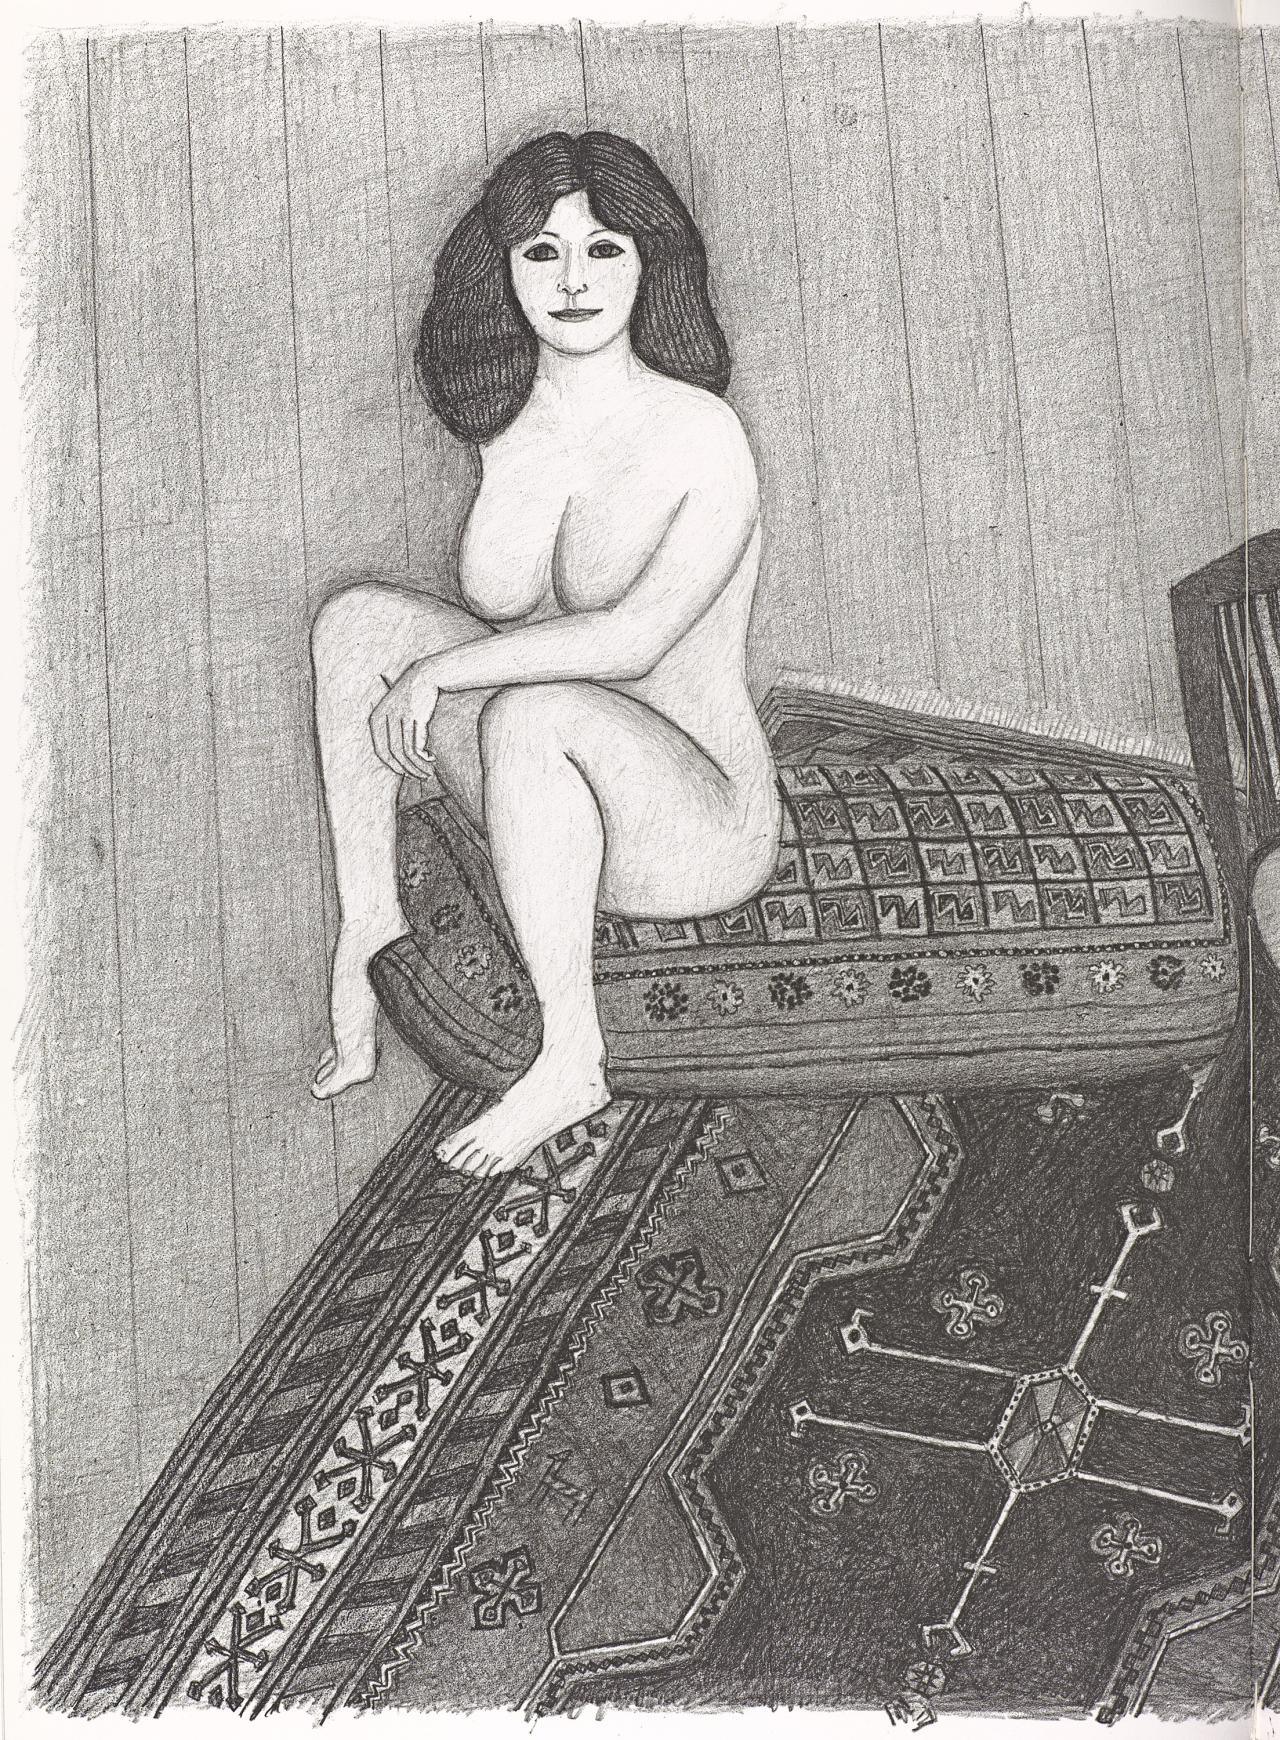 (Two seated nudes, one on cushion and one on chair, on patterned rug)